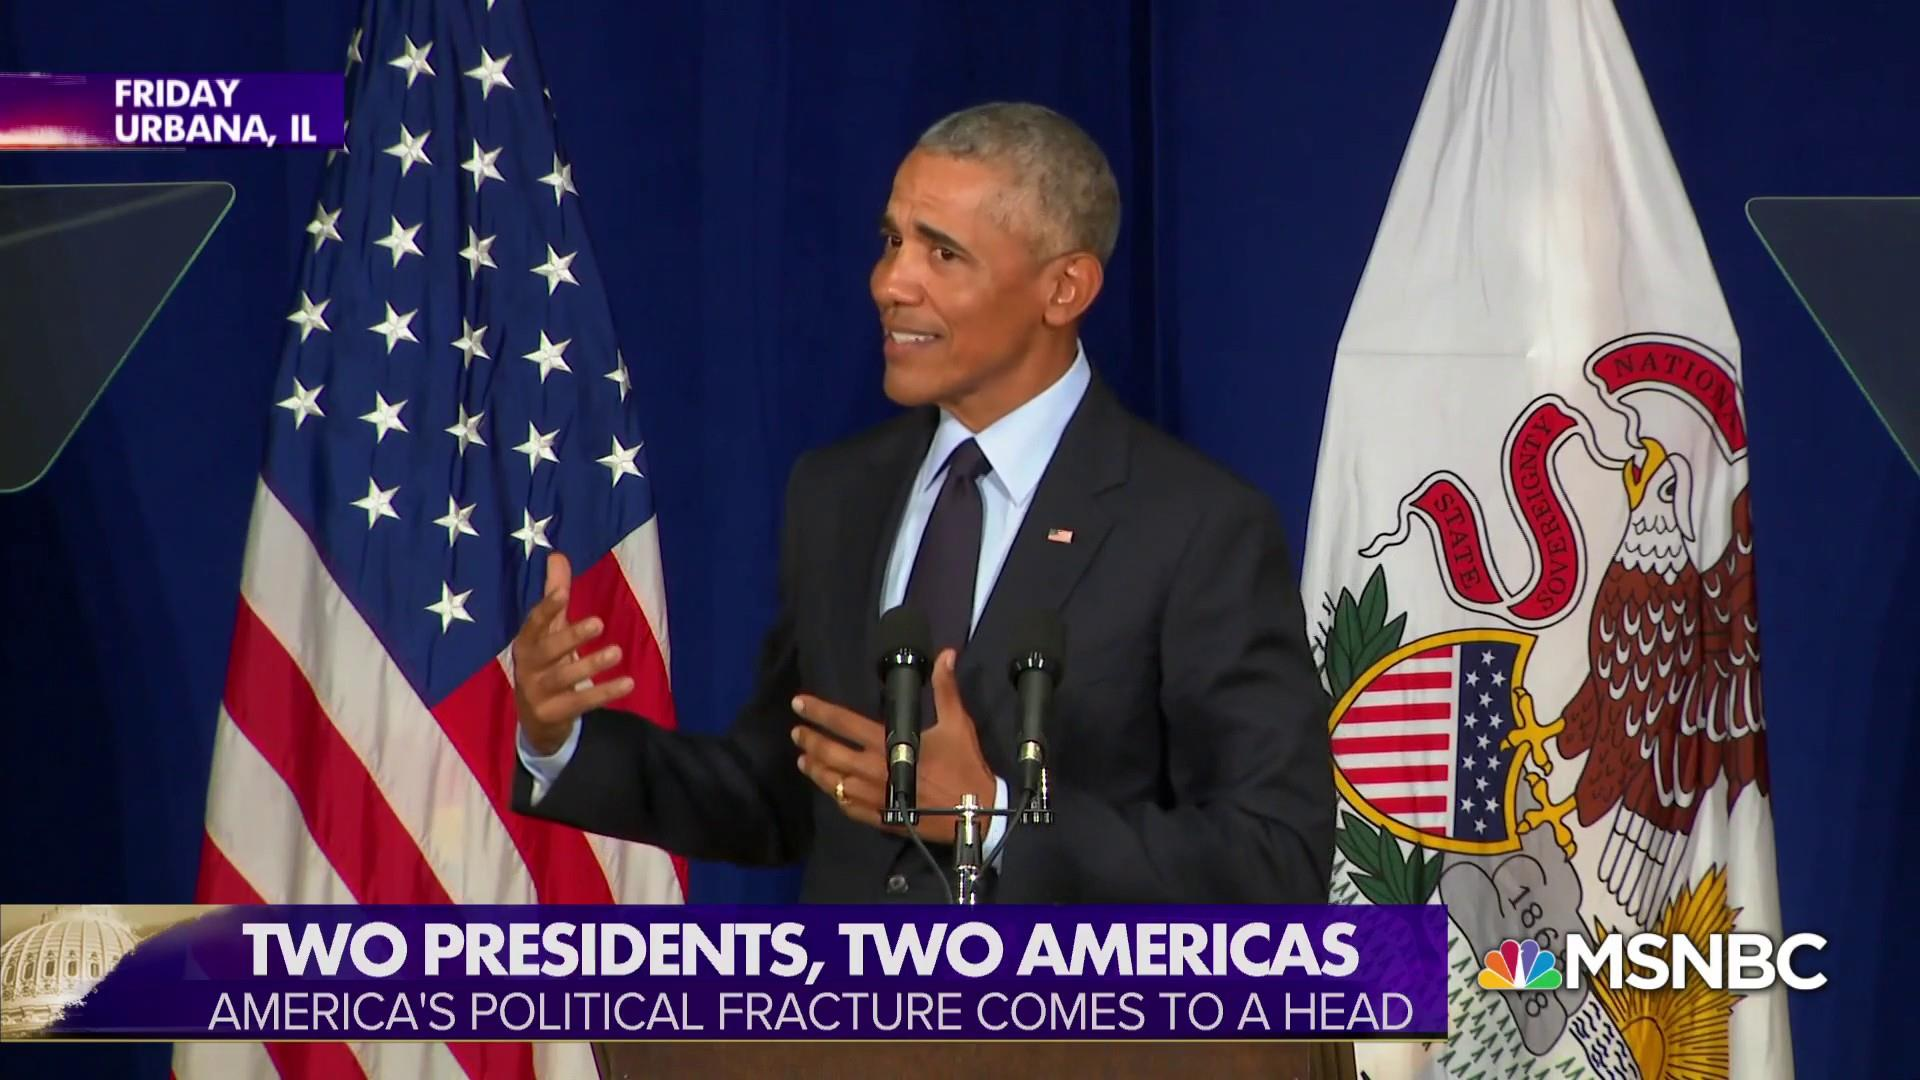 Tale of Two Americas: Trump & Obama offer contrasting visions